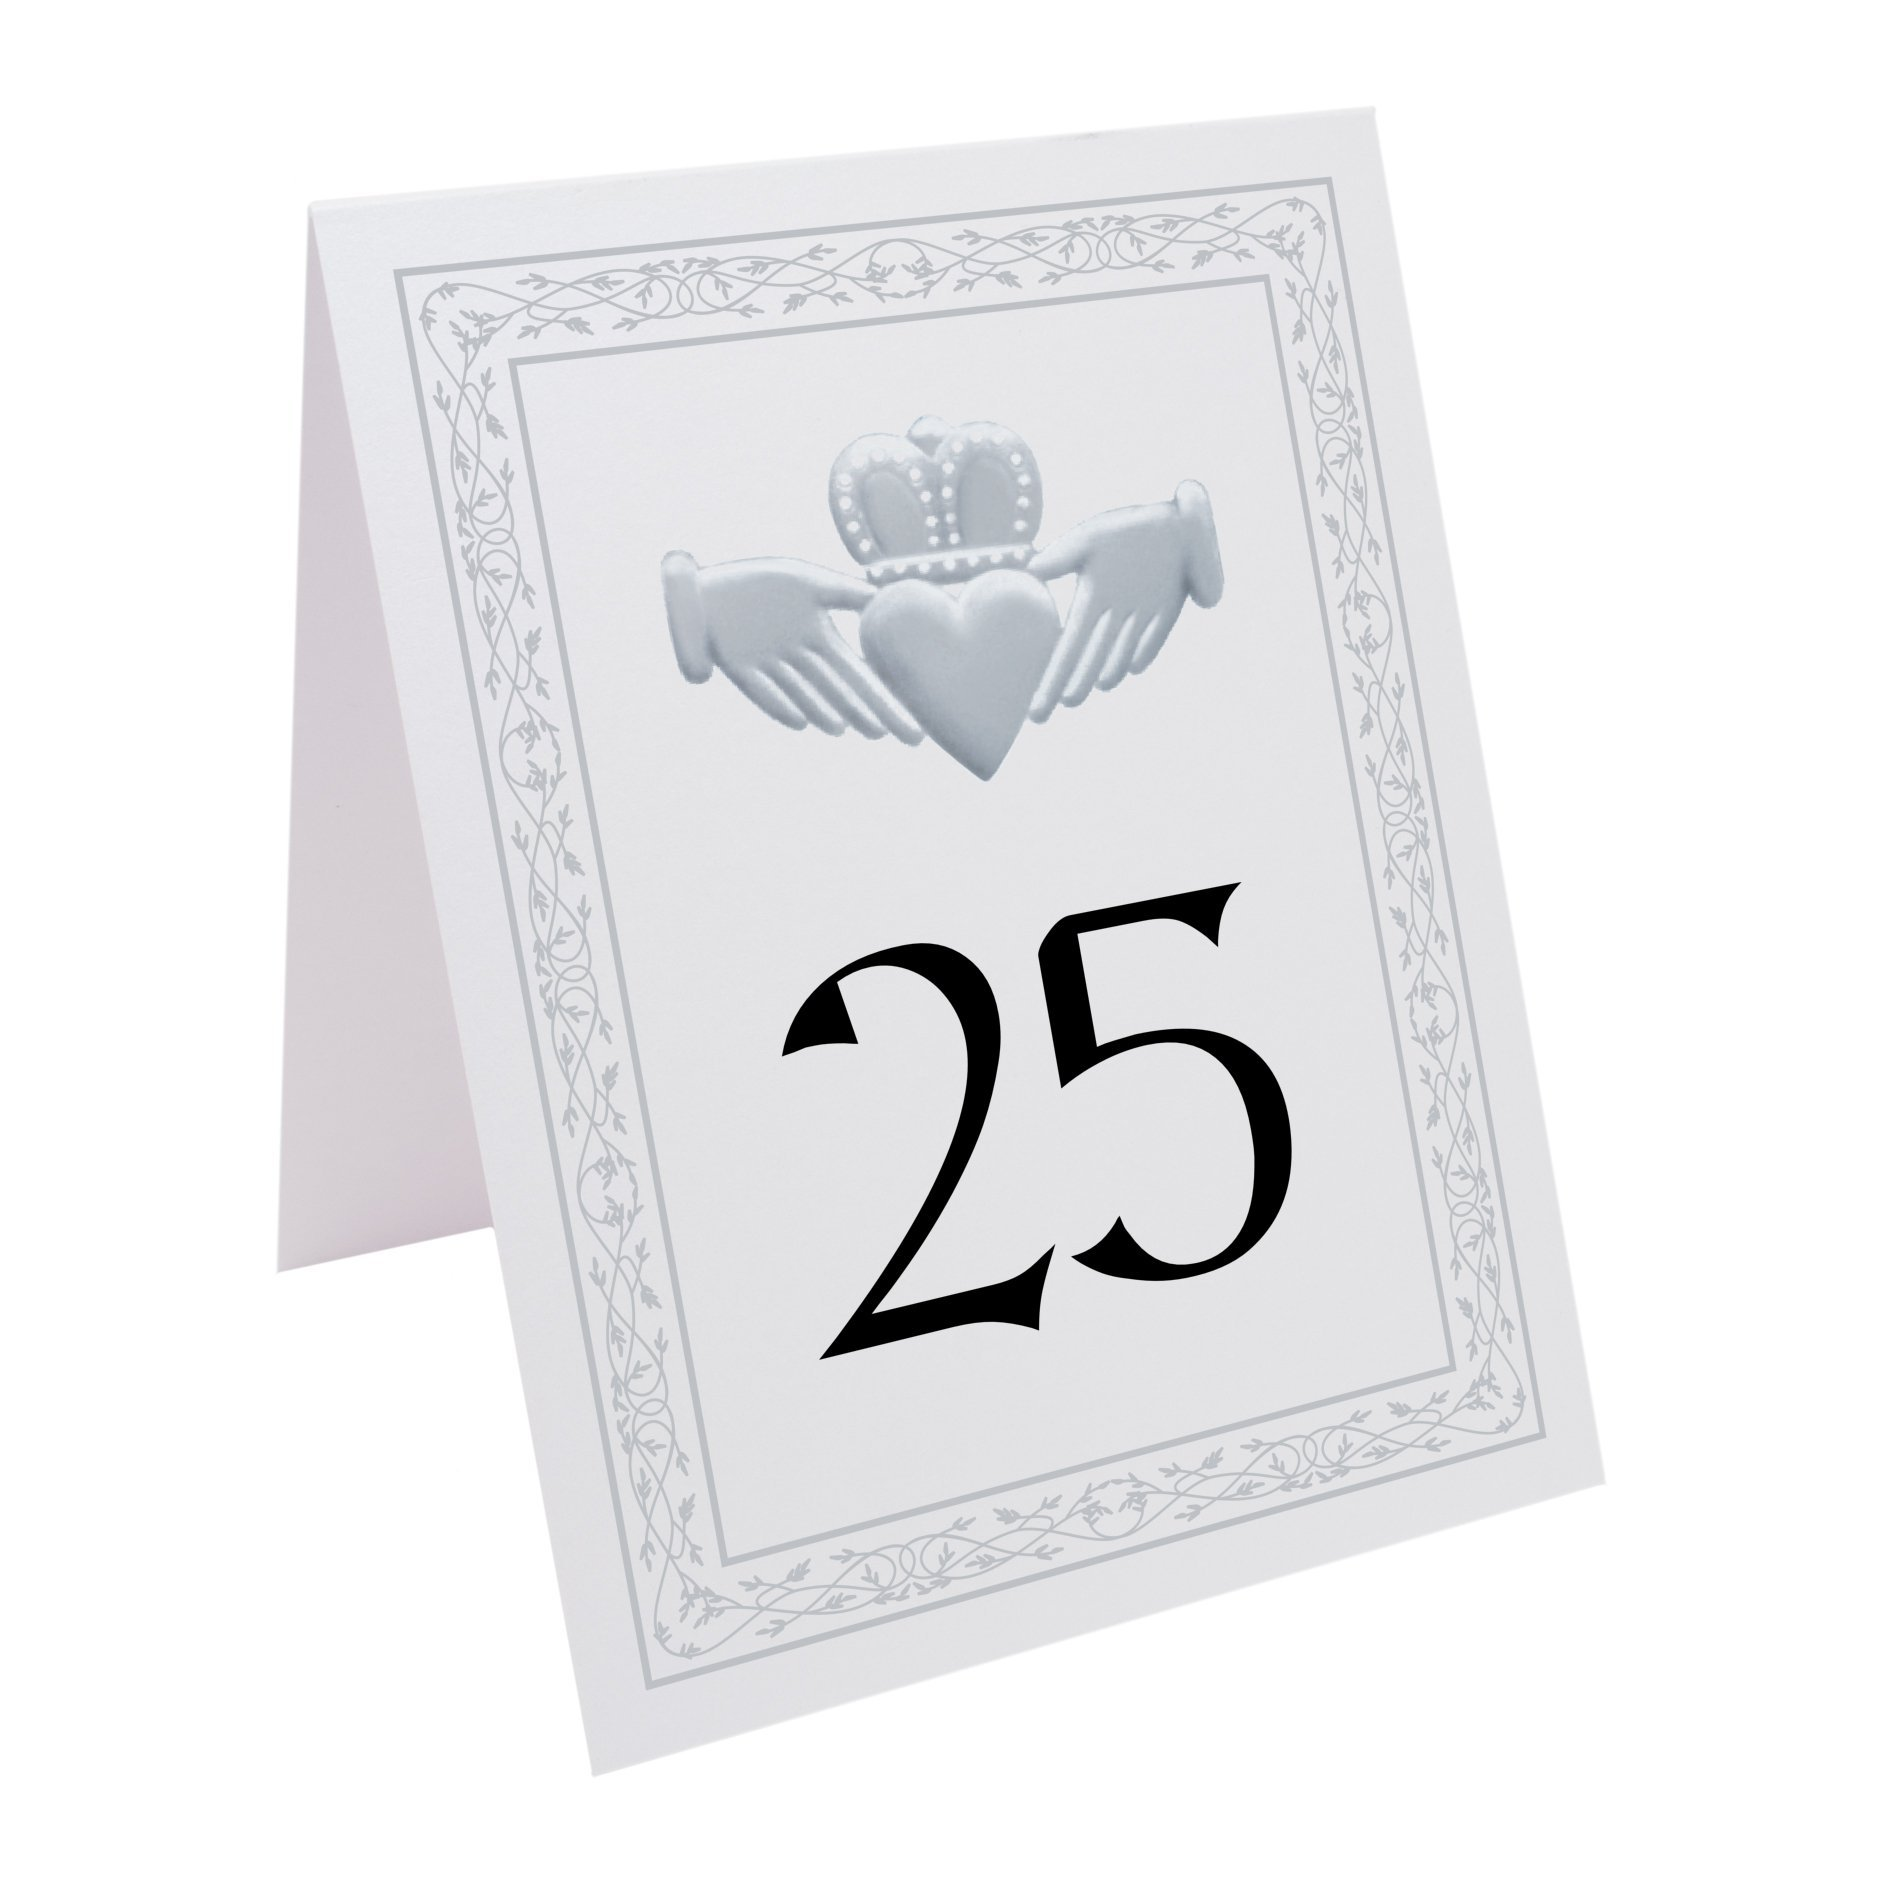 Documents and Designs Silver Claddagh Table Numbers (Select Quantity), White, 1-75